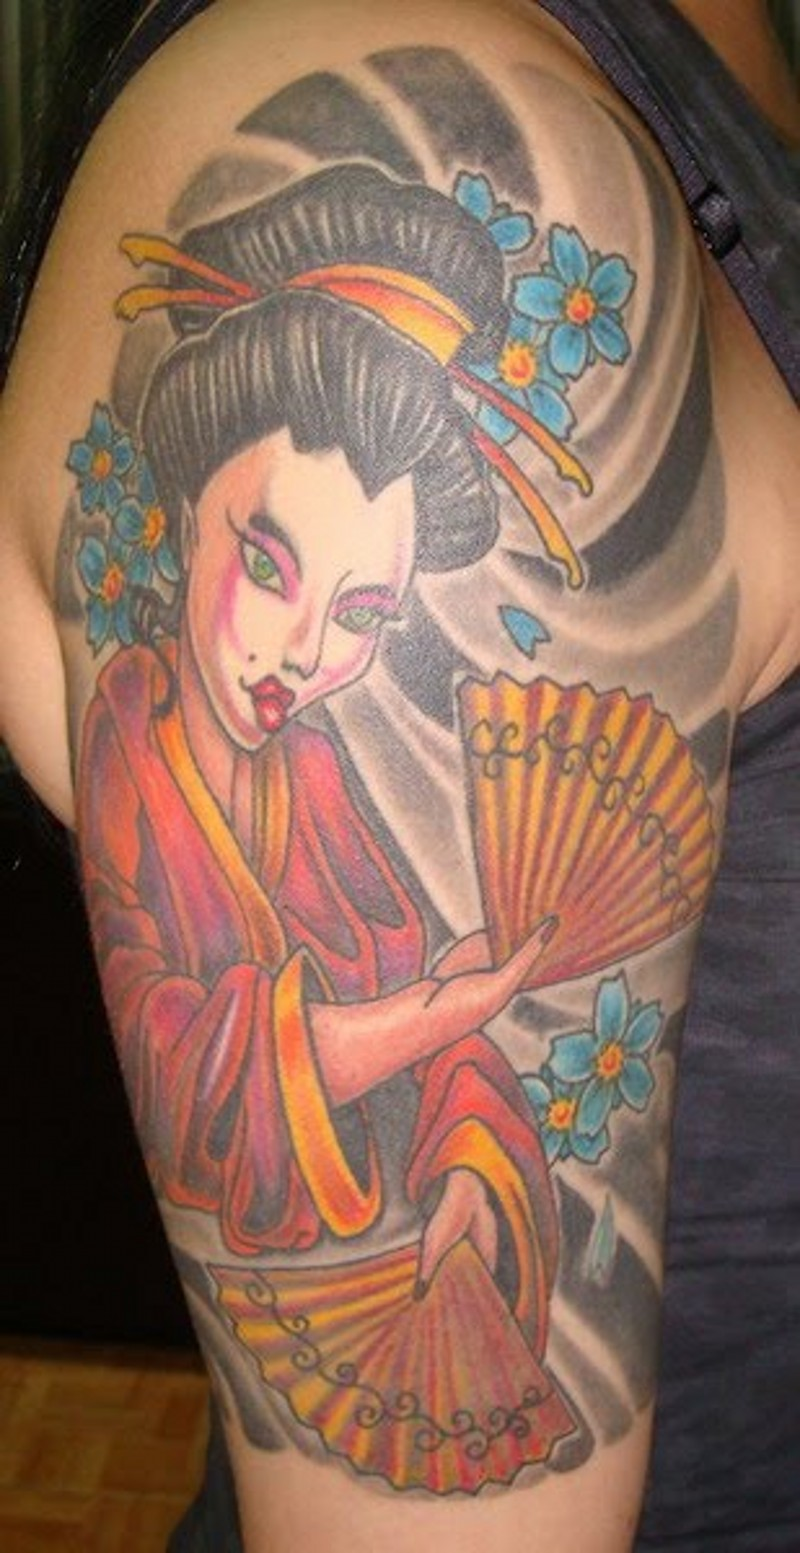 Old cartoon style painted colored shoulder tattoo of Asian geisha with flowers and fan